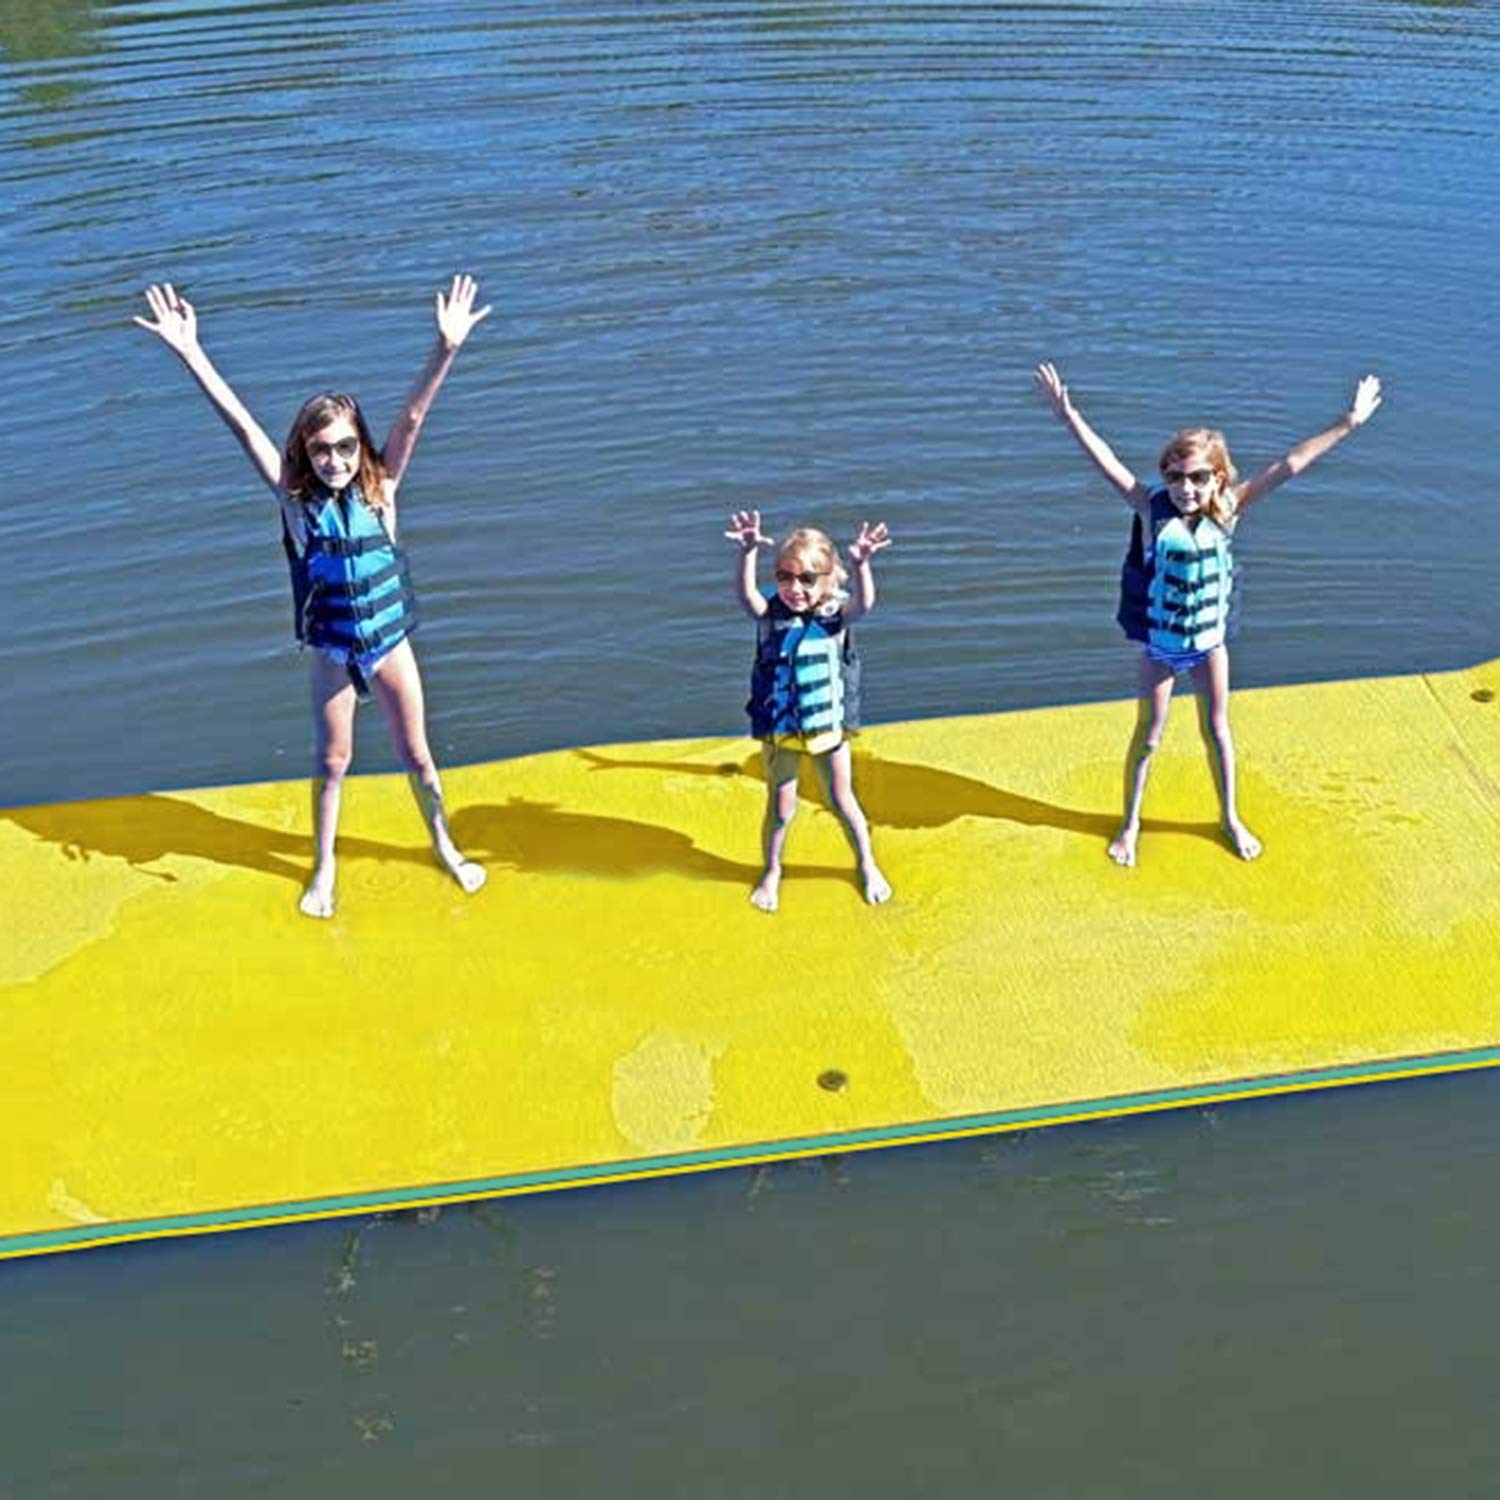 Superday Floating Water Mat Recreation Foam Pad Adults Kids Relax On Pool Lake&Ocean 12' x 6', Yellow